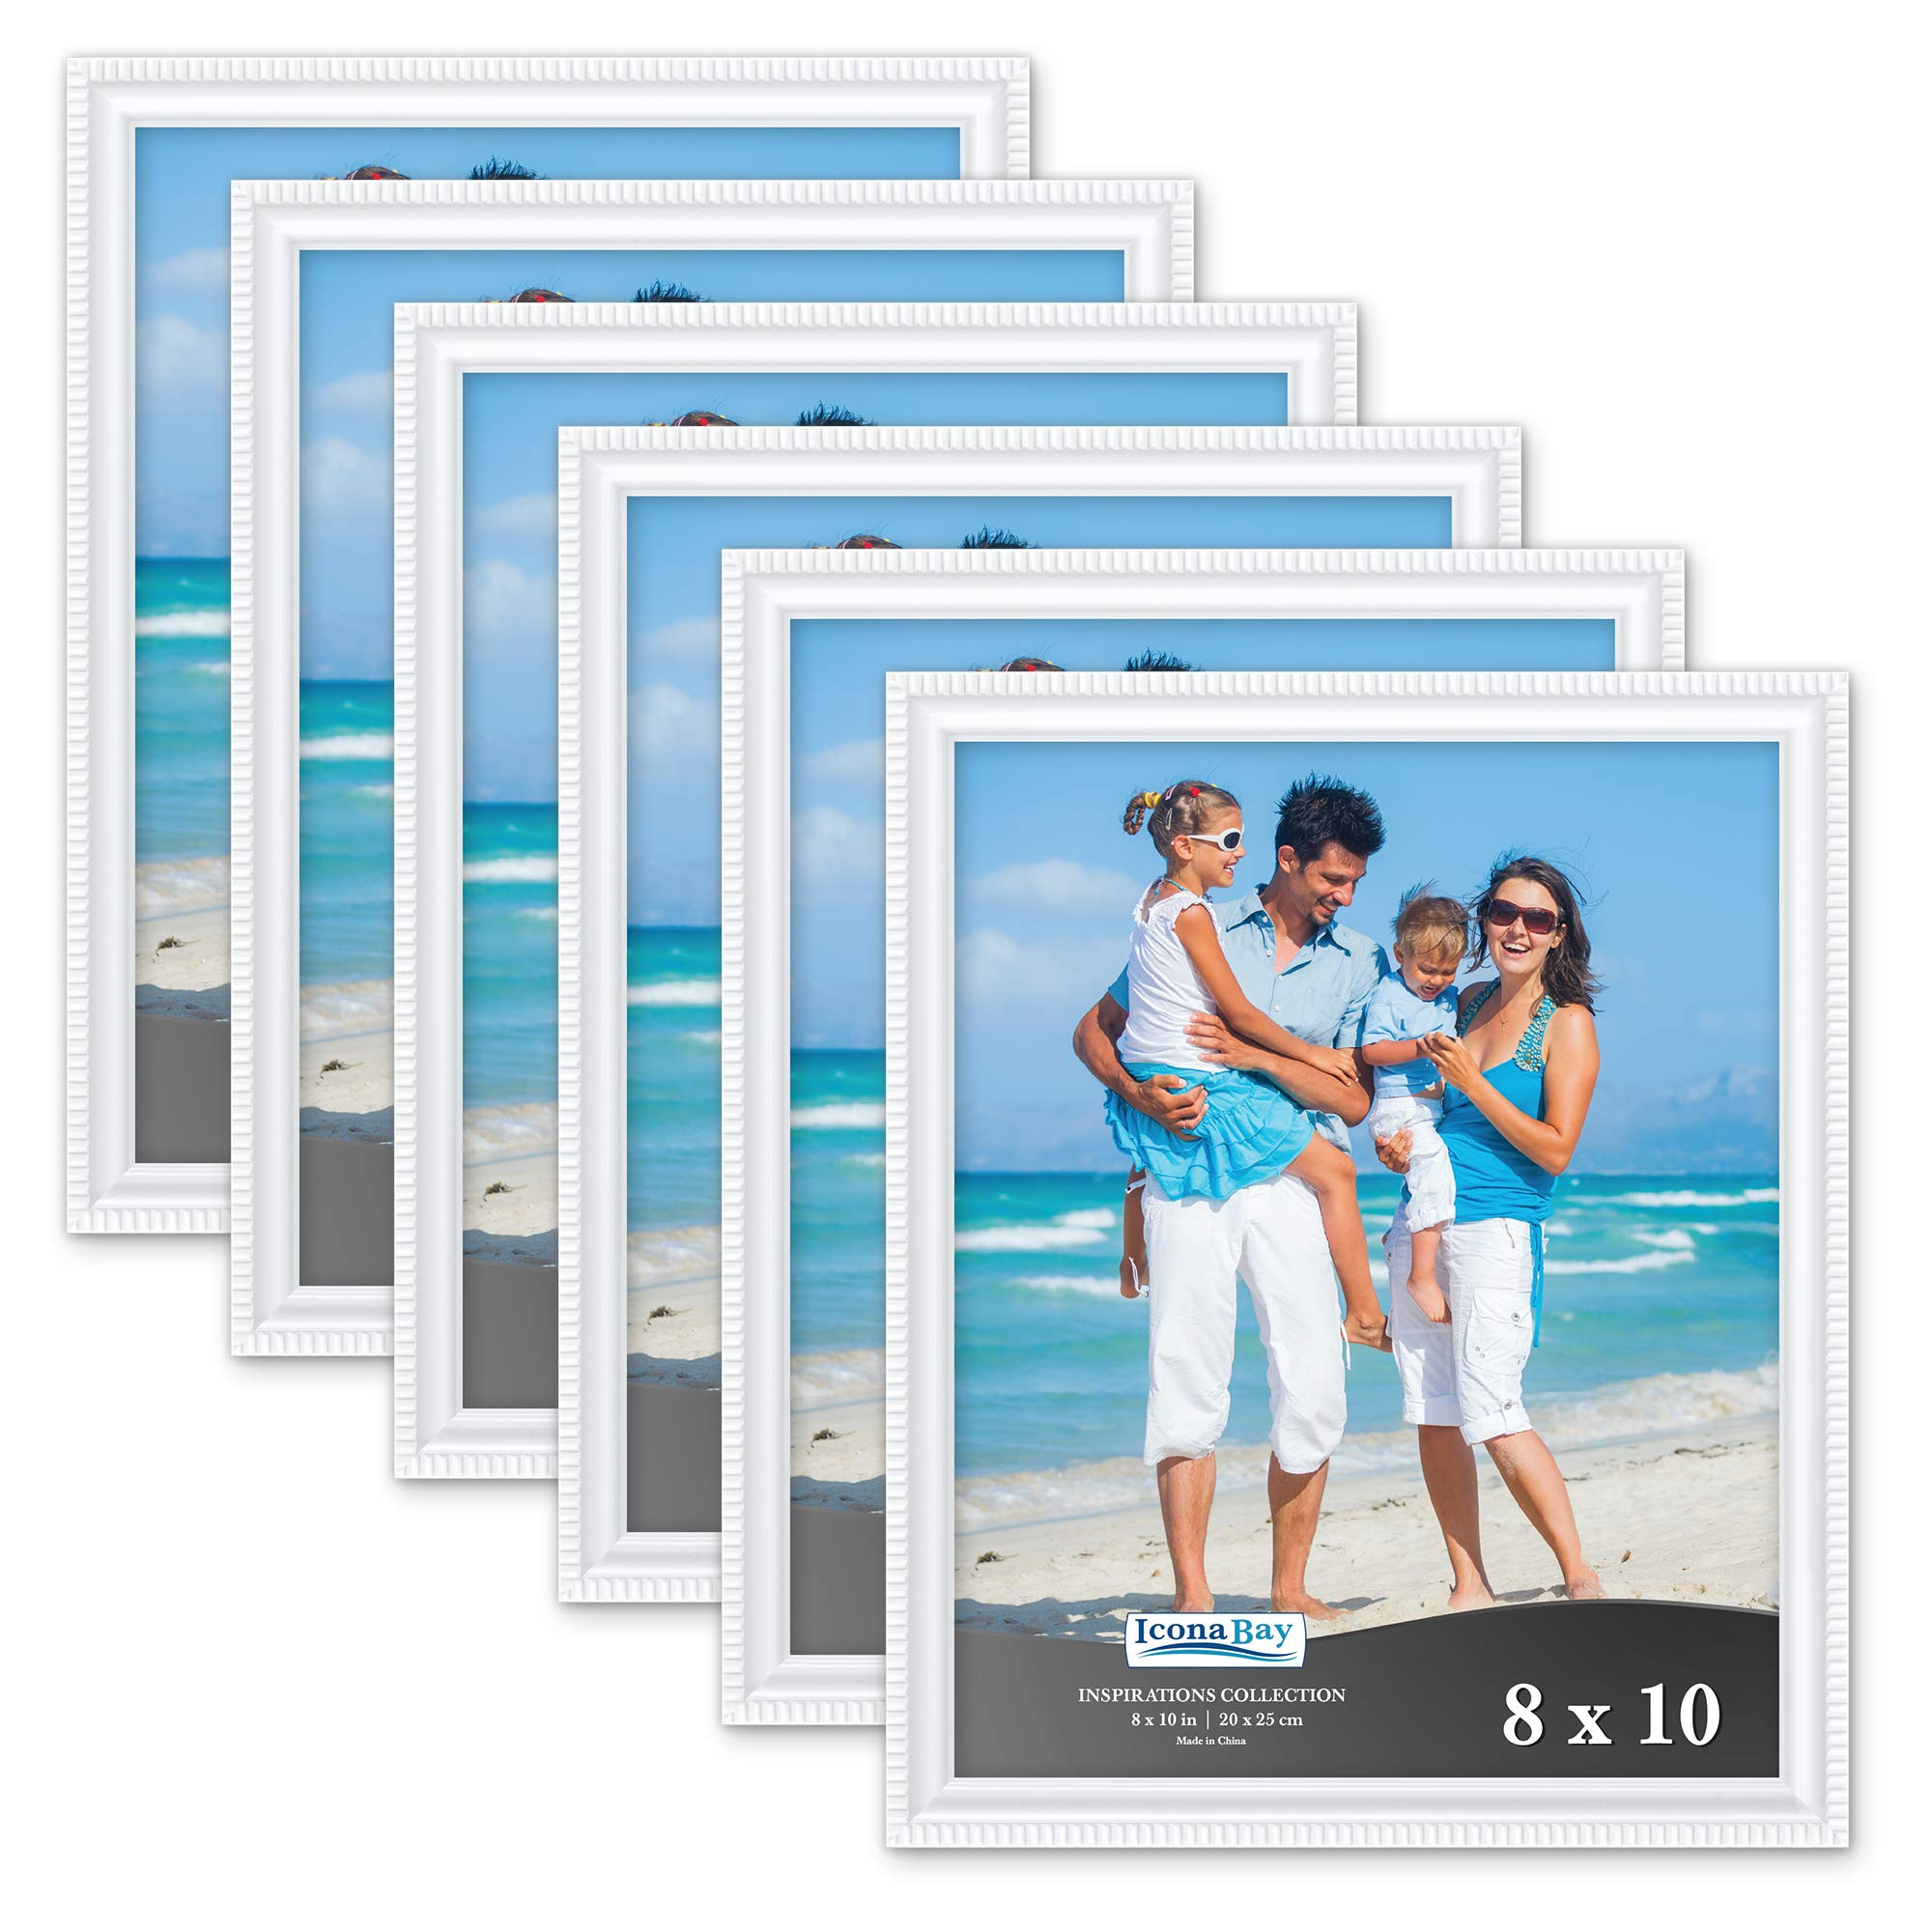 Icona Bay 8x10 Picture Frames (6 Pack, White) Picture Frame Set, Wall Mount or Table Top, Set of 6 Inspirations Collection by Icona Bay